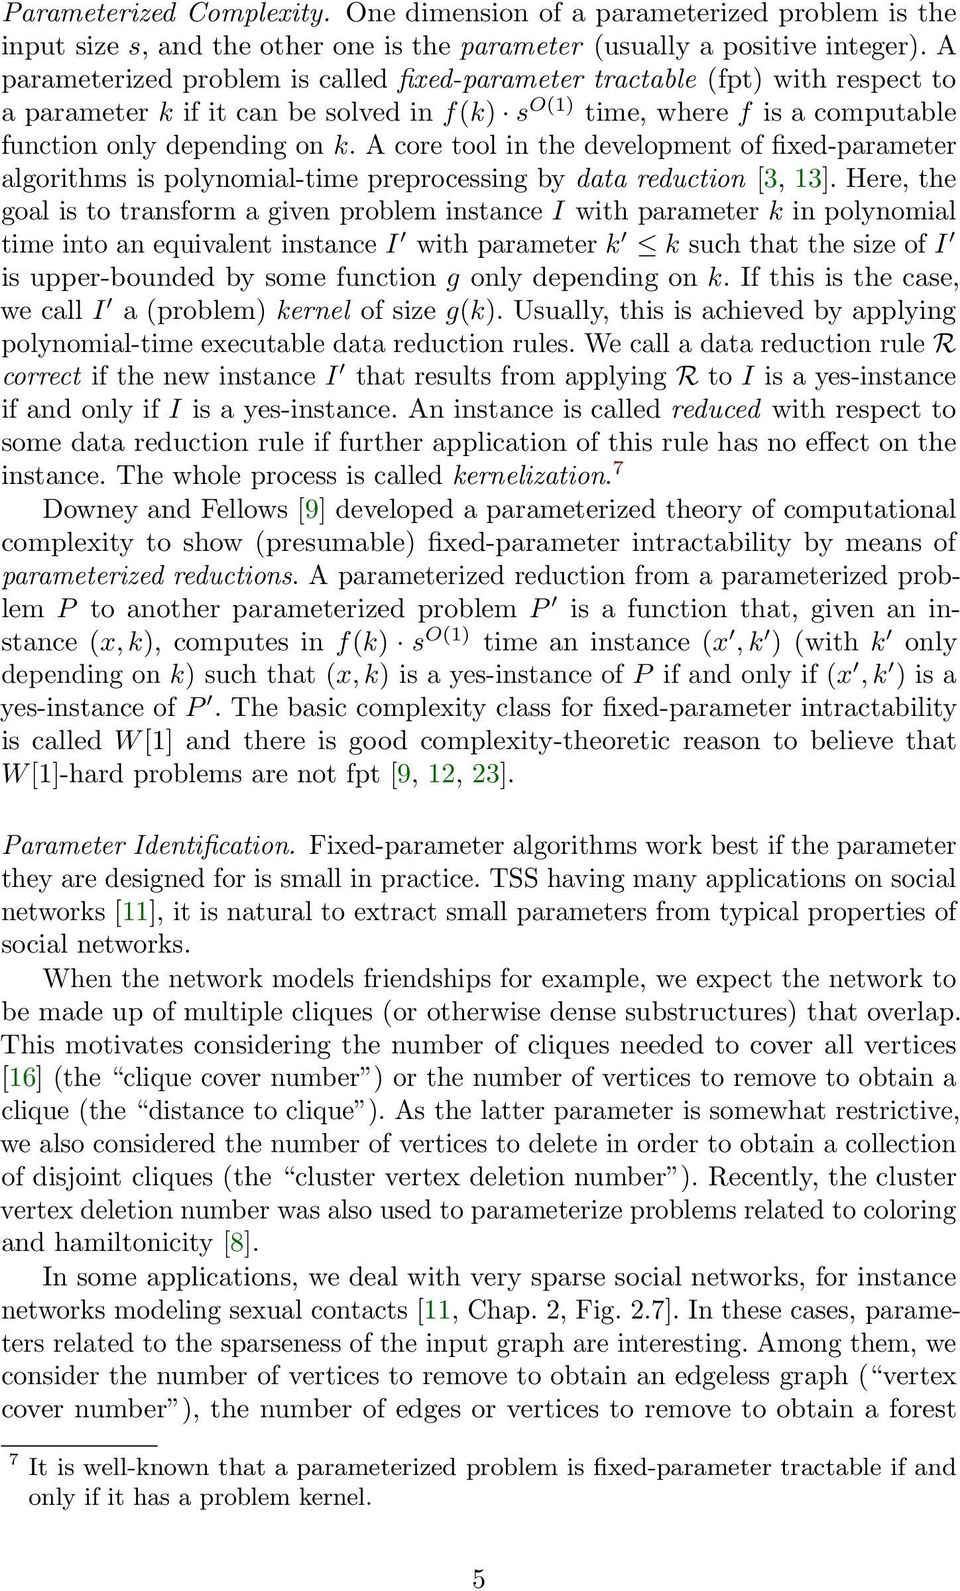 A core tool in the development of fixed-parameter algorithms is polynomial-time preprocessing by data reduction [3, 13].